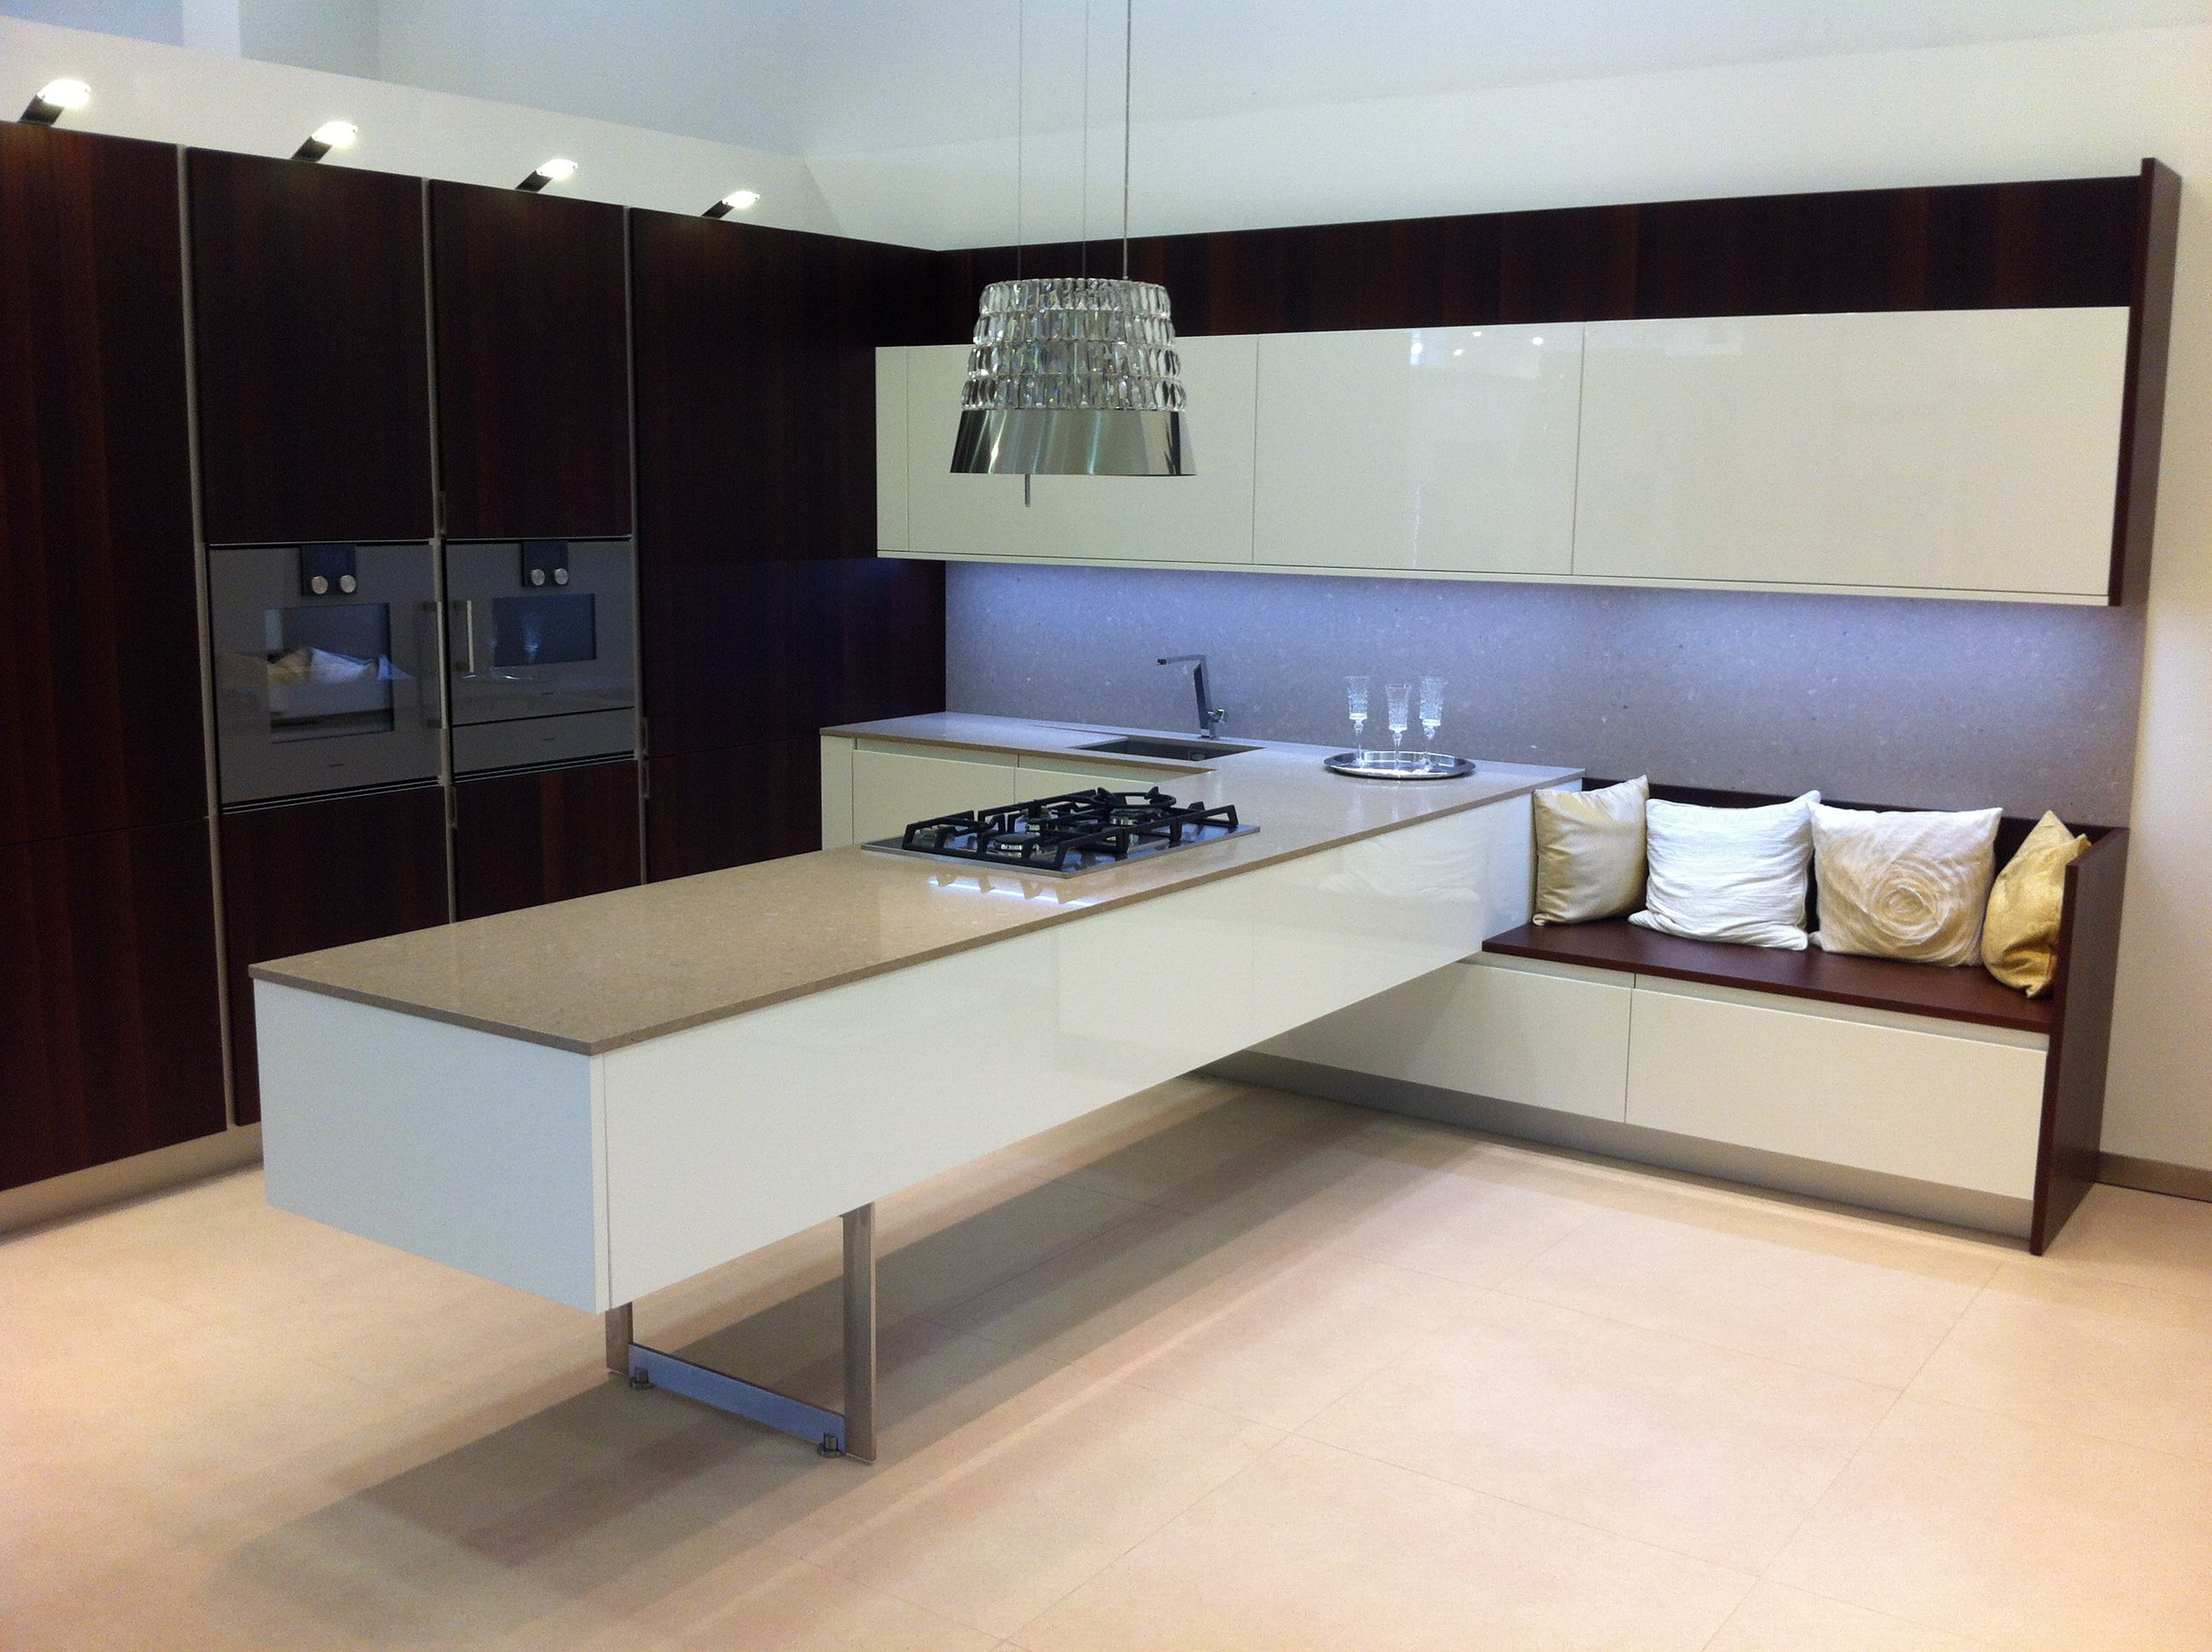 Floating kitchen island with built-in sofa  Floating kitchen